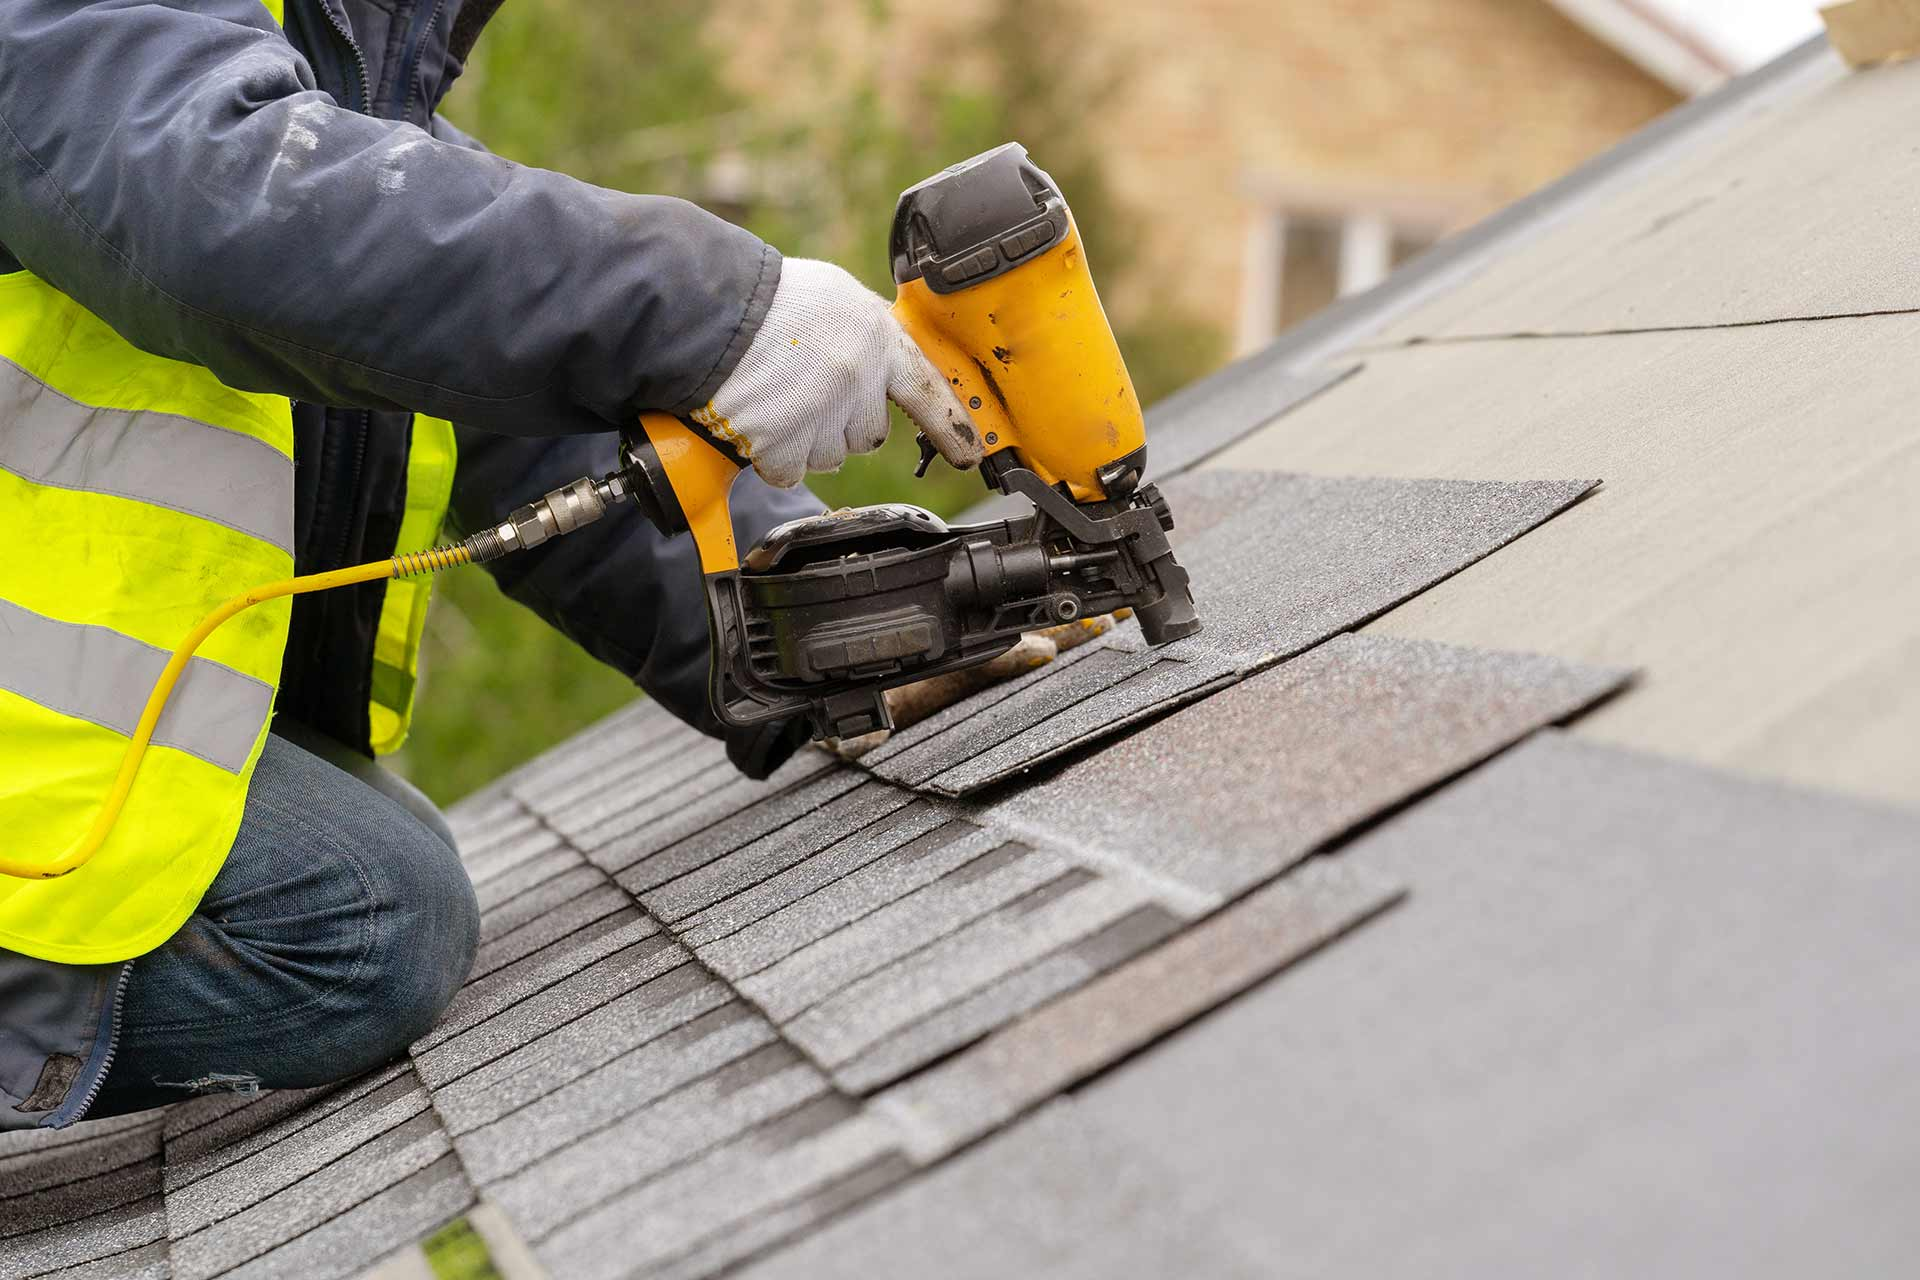 Roof repair worker replacing shingles on a home in Plant City, FL.